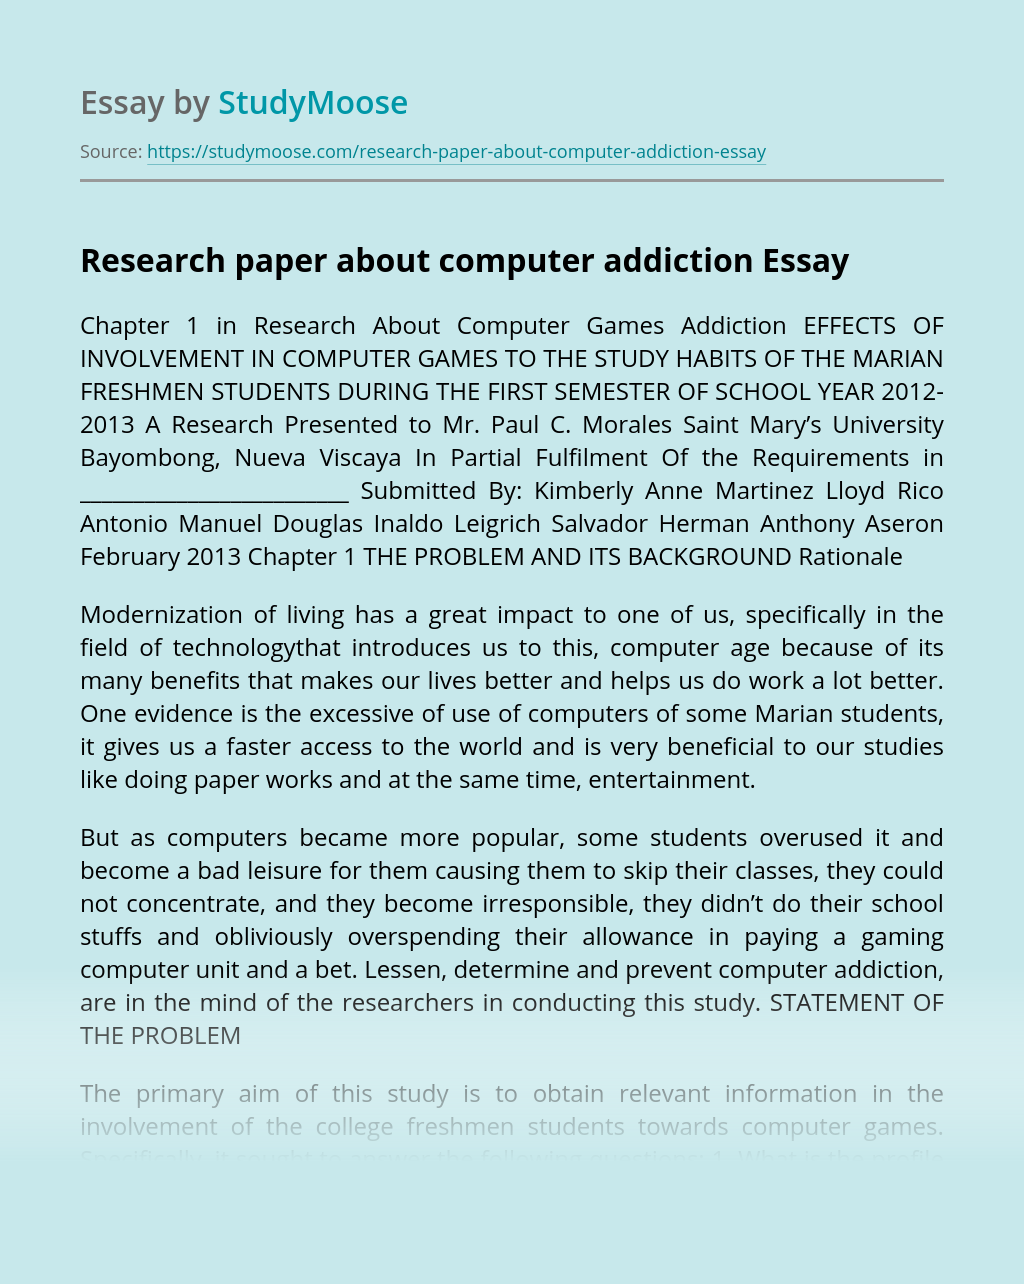 Research paper about computer addiction